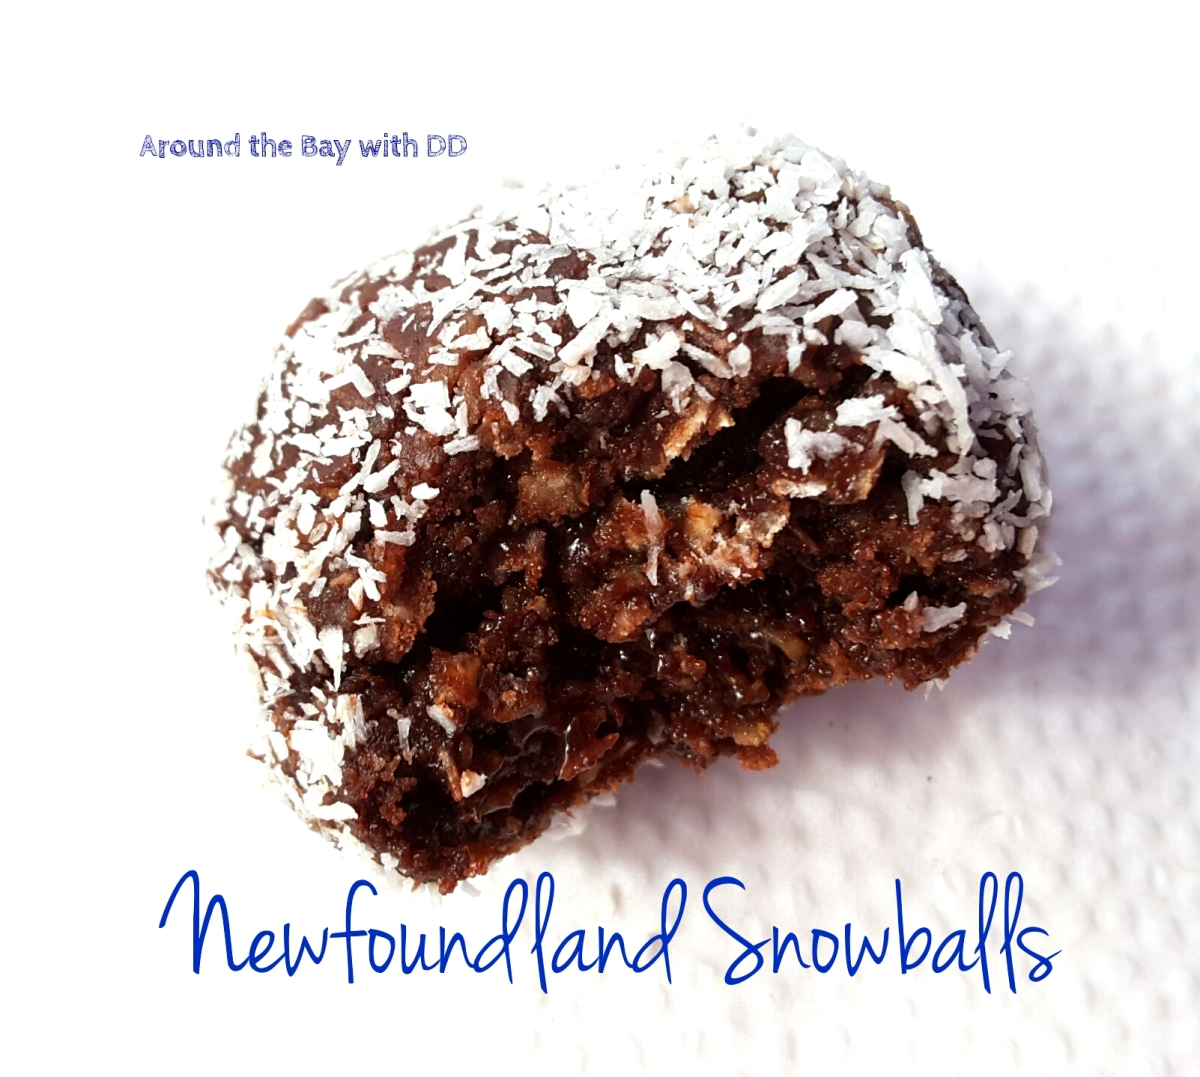 Newfoundland Snowballs